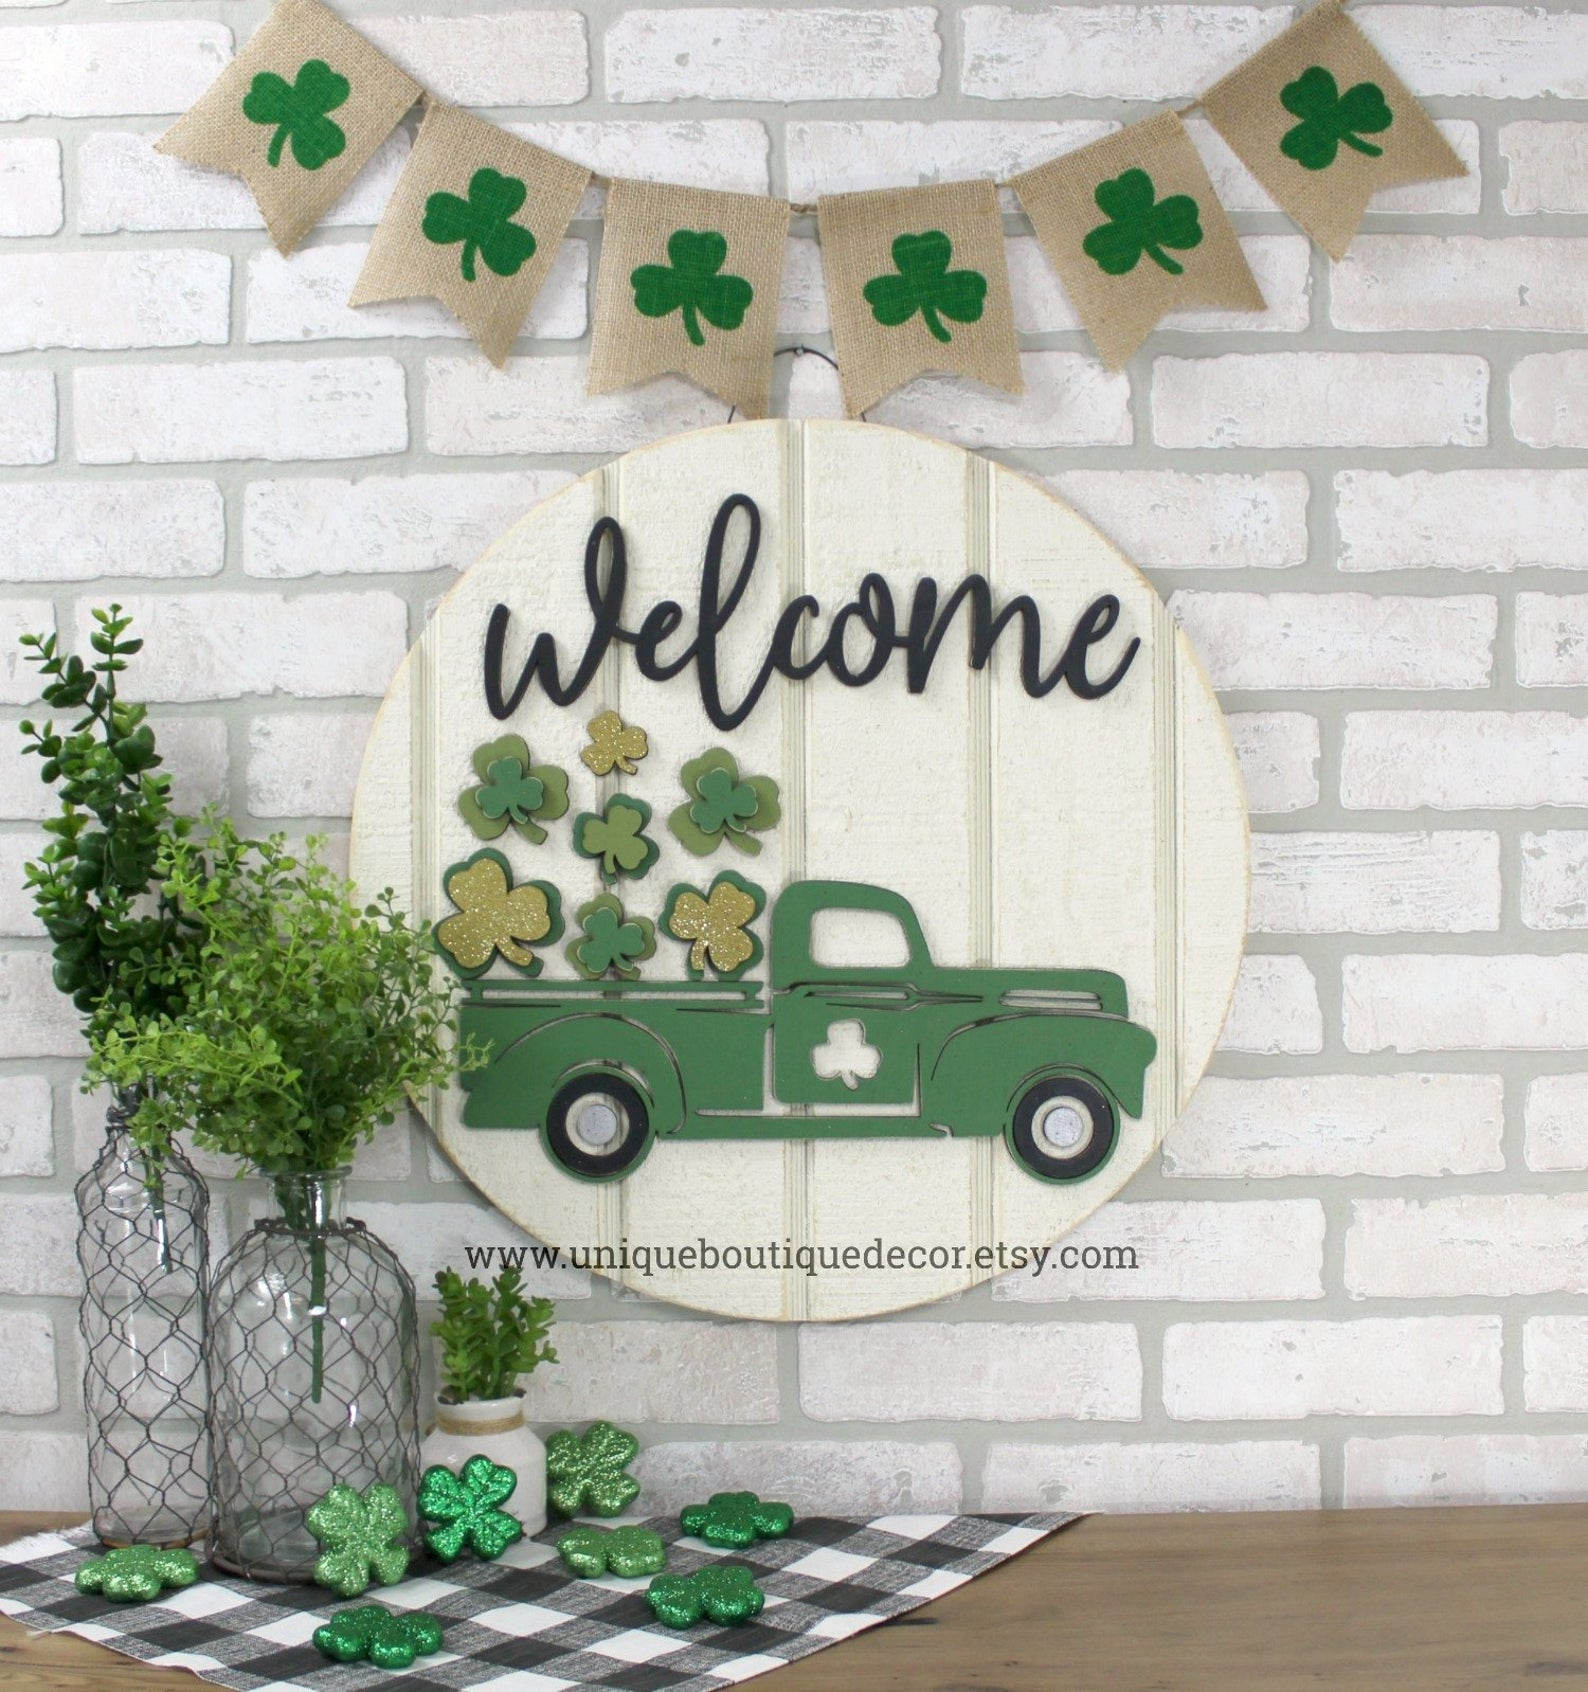 St. Patrick & # 39; s Day decorations - wooden sign